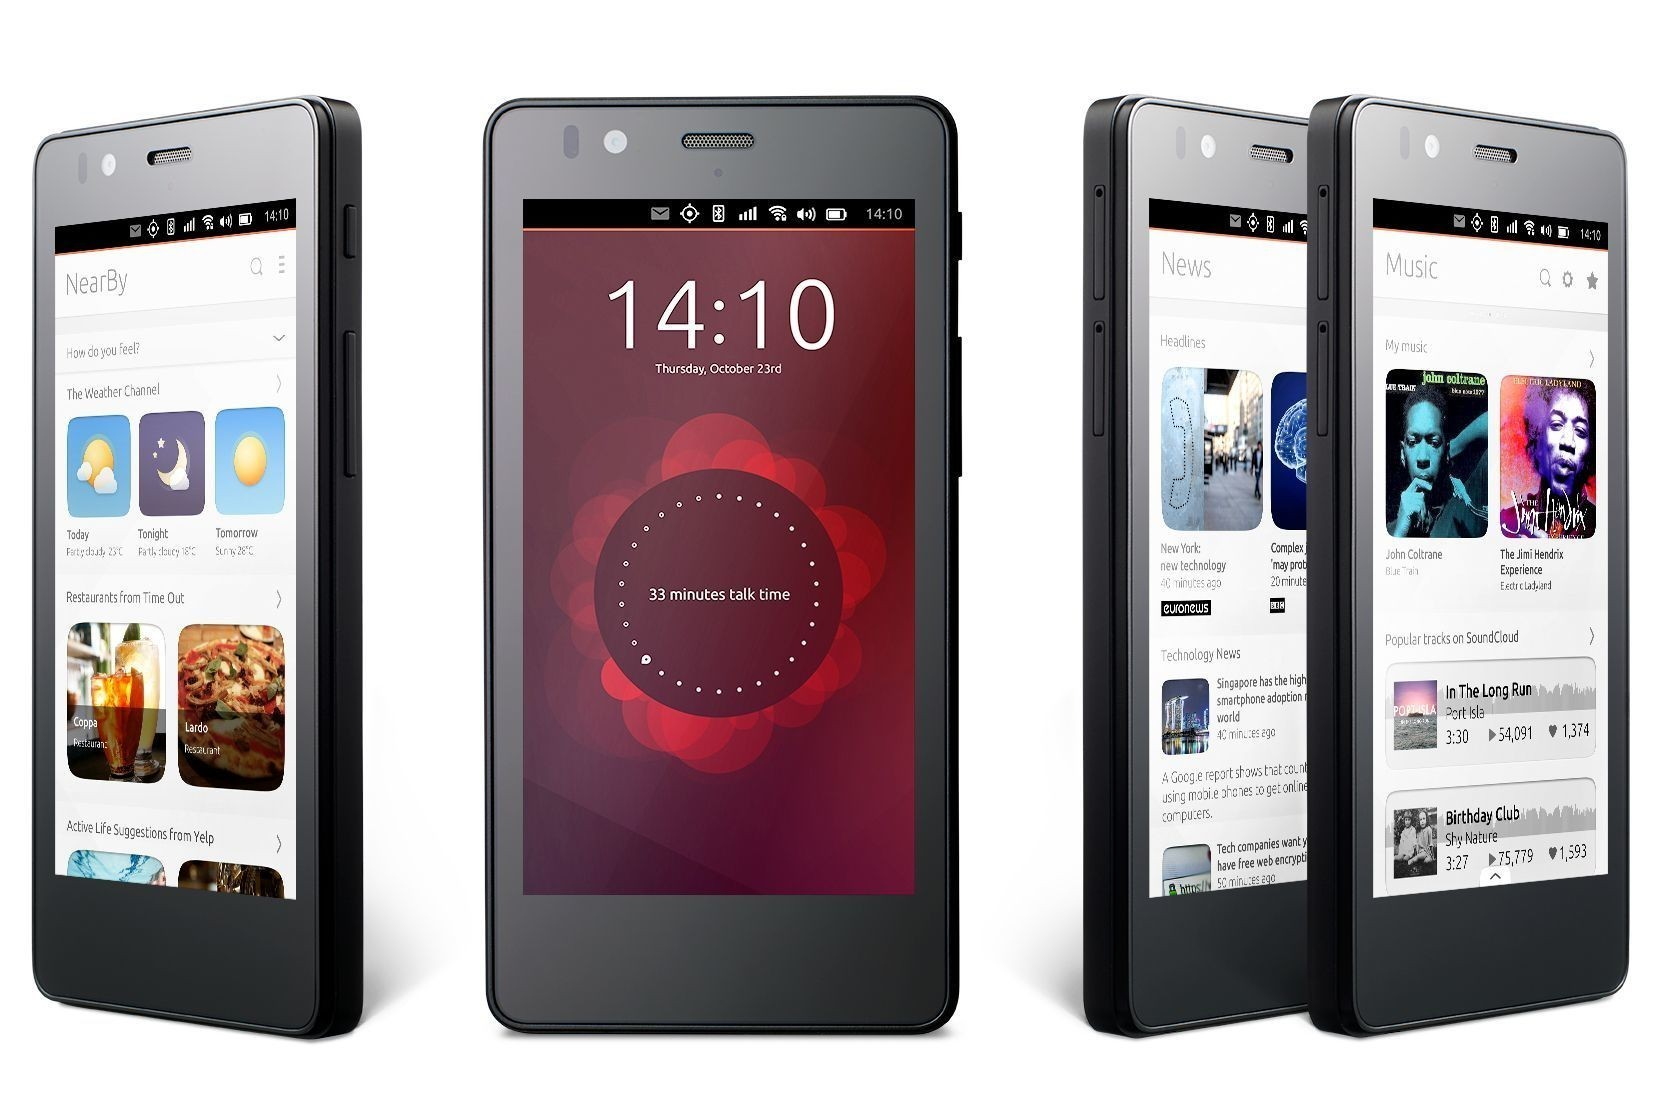 The Ubuntu phone is about to go on sale, but curb your enthusiasm